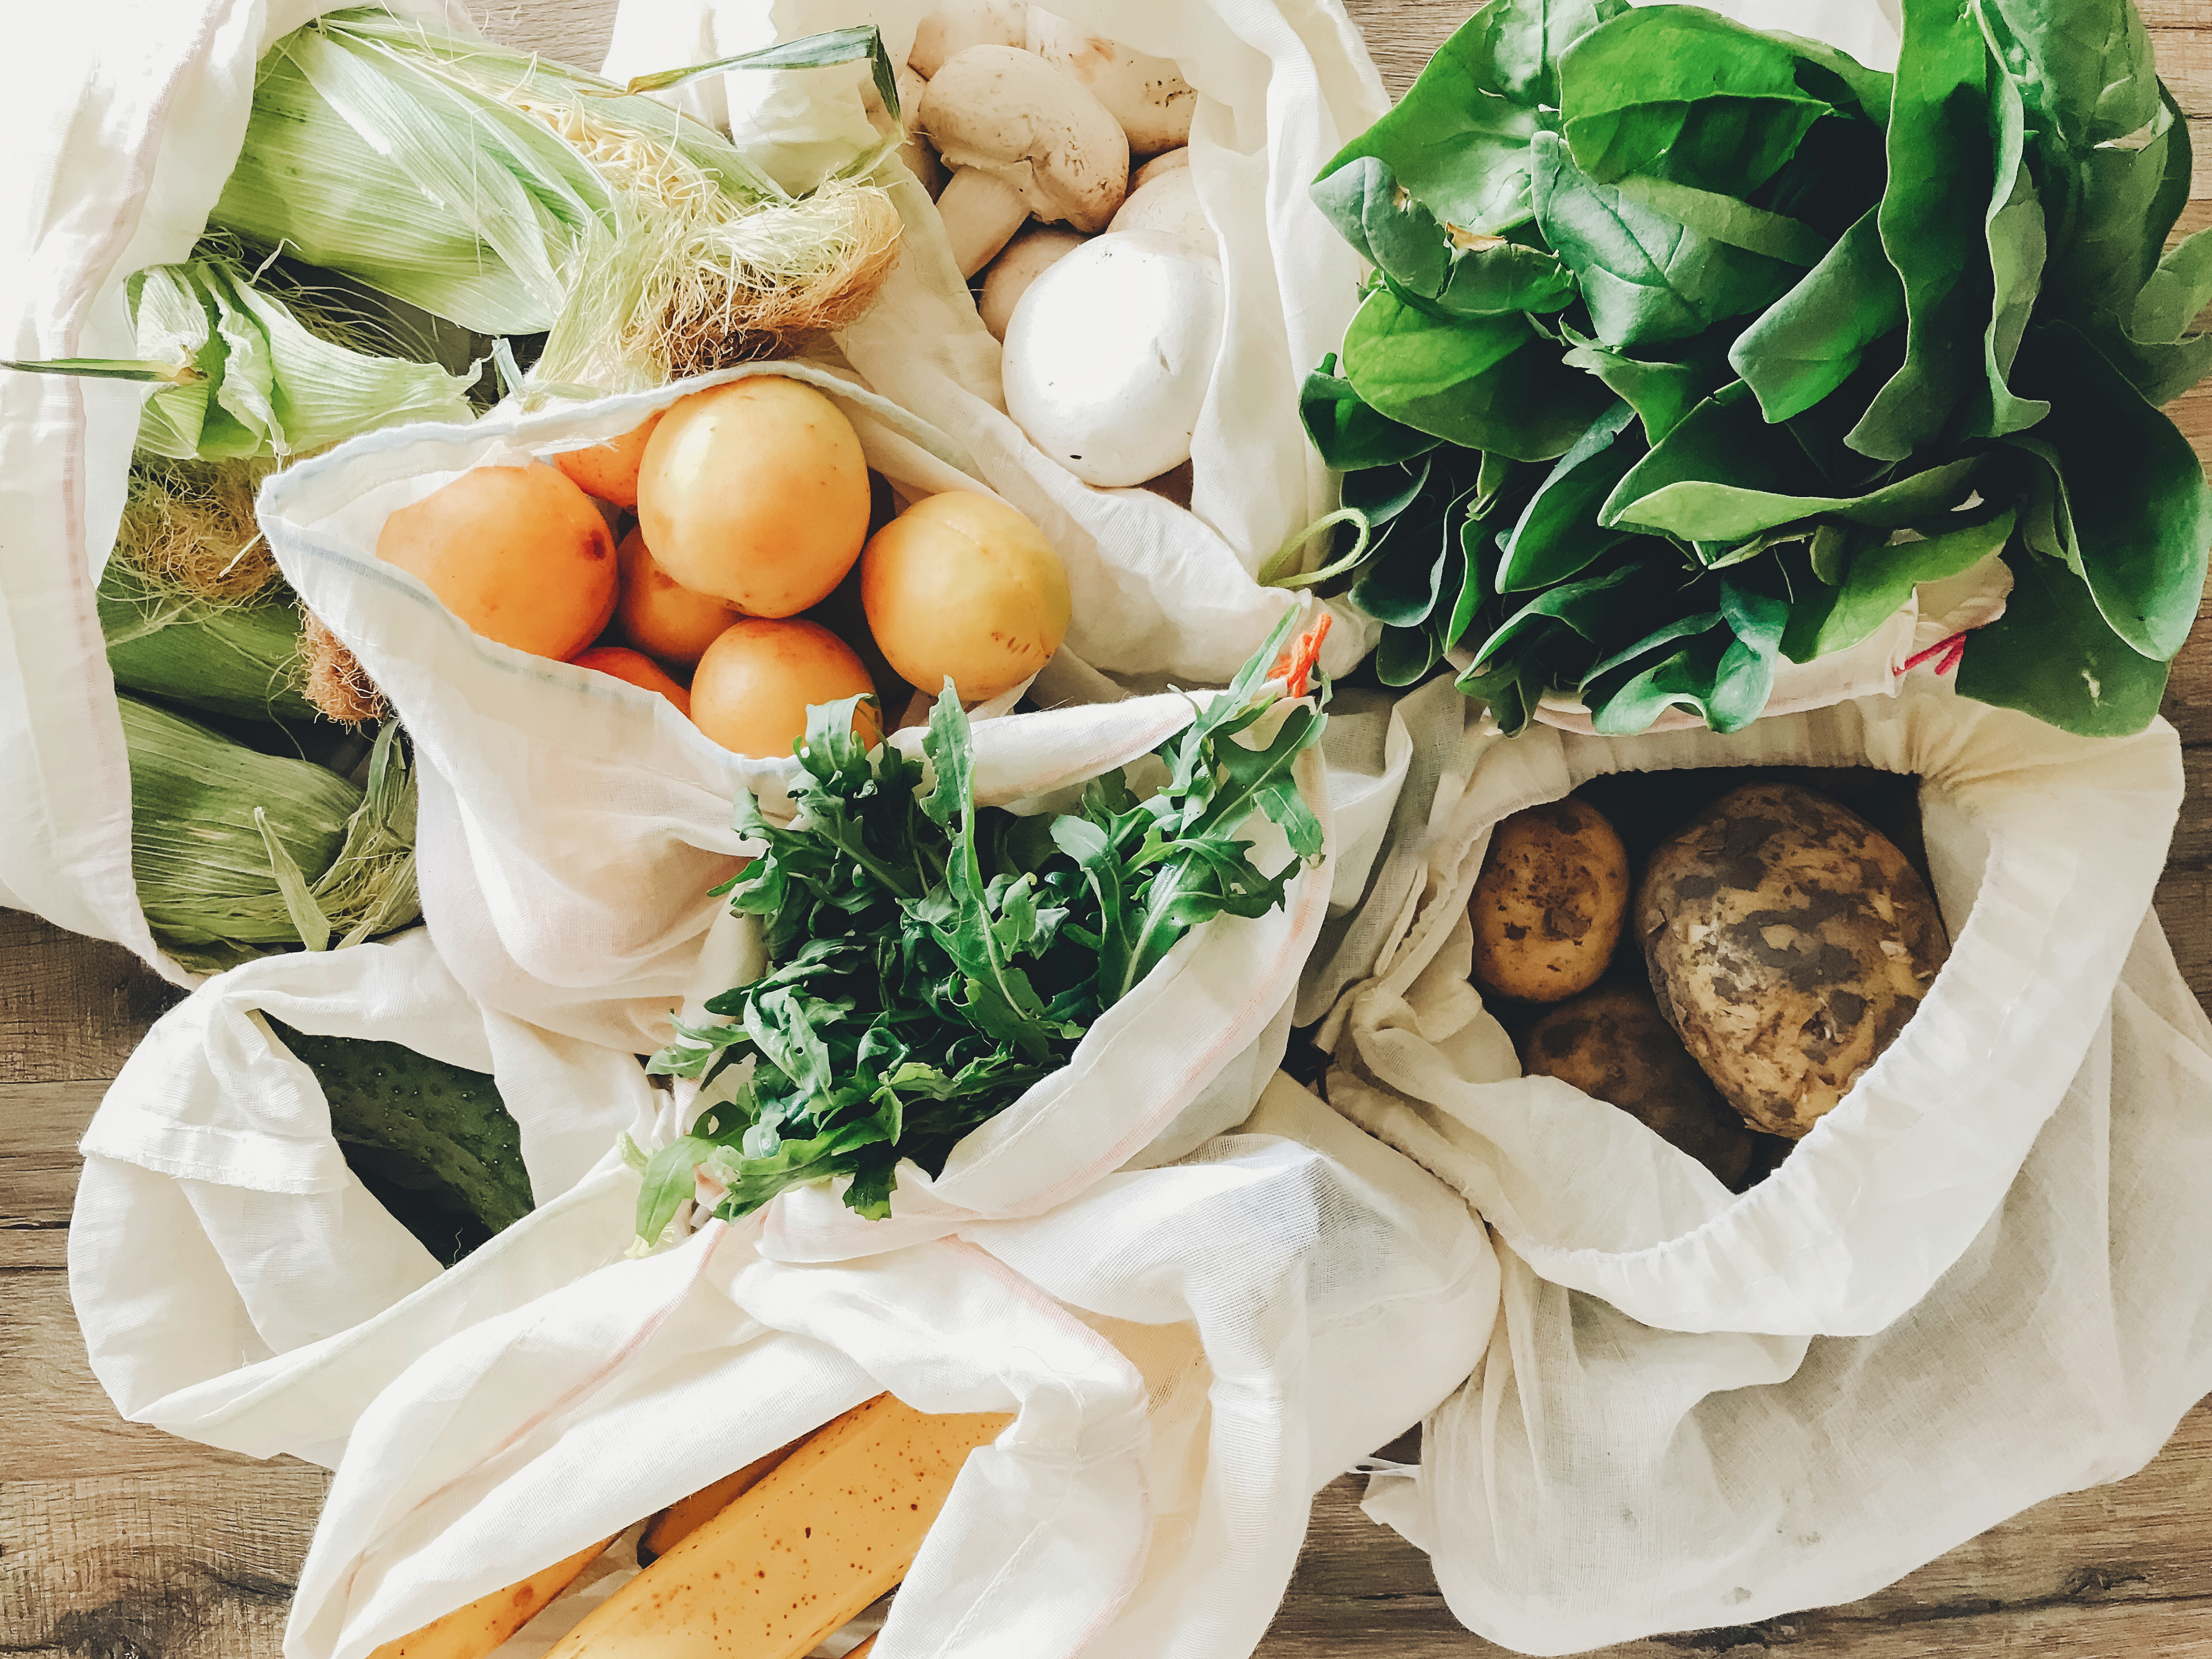 On overhead view of fresh vegetables in cloth bags.